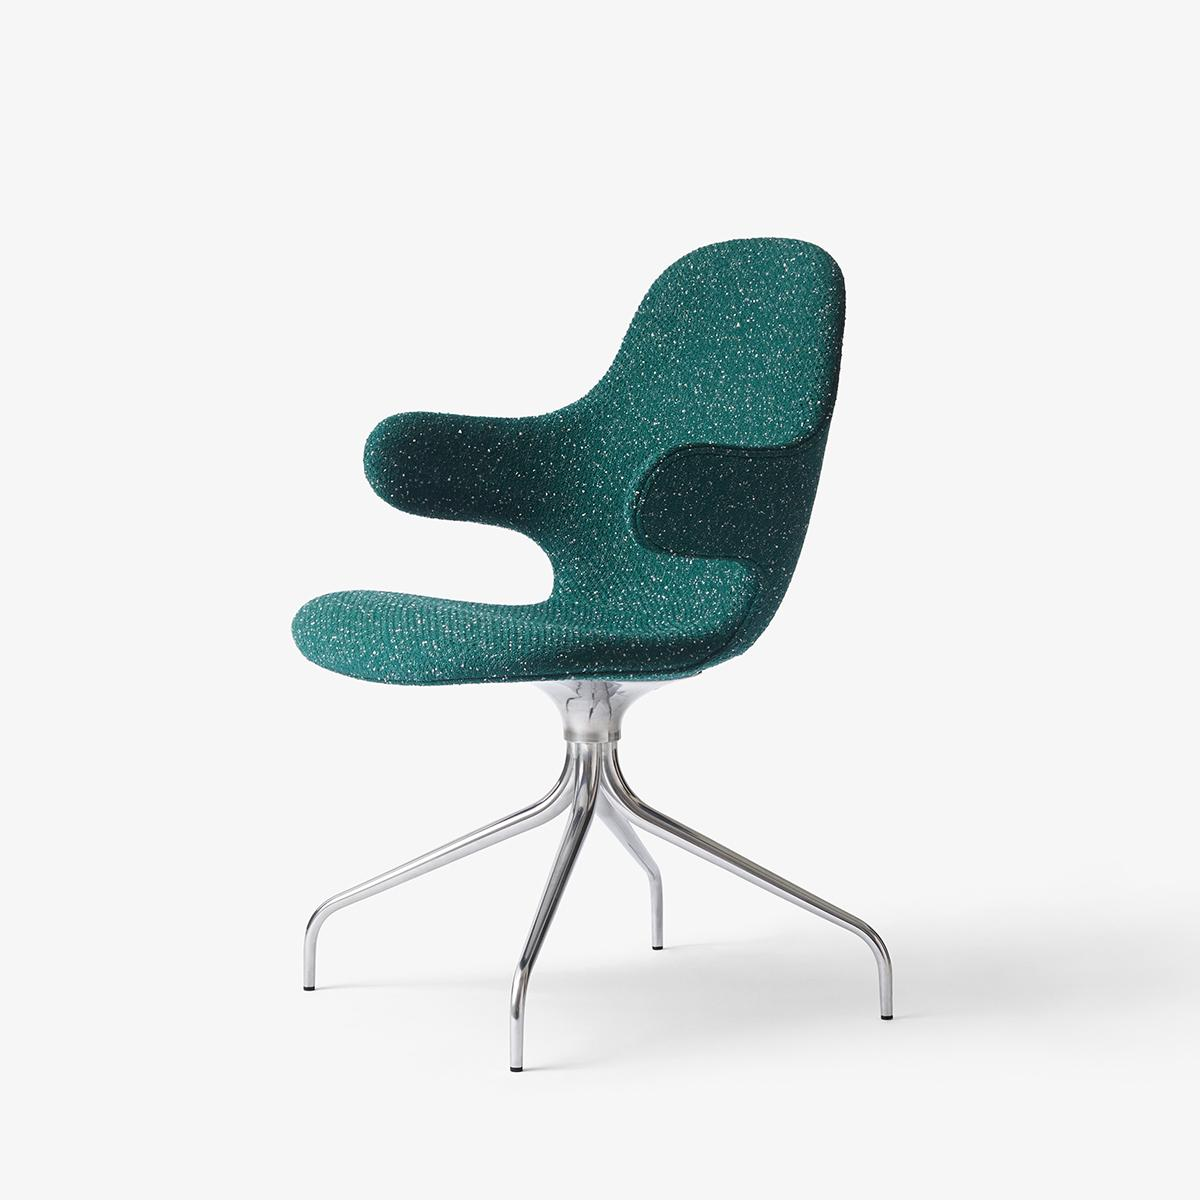 Catch-Chair-Pilot-972-Front-Side-Green-1200